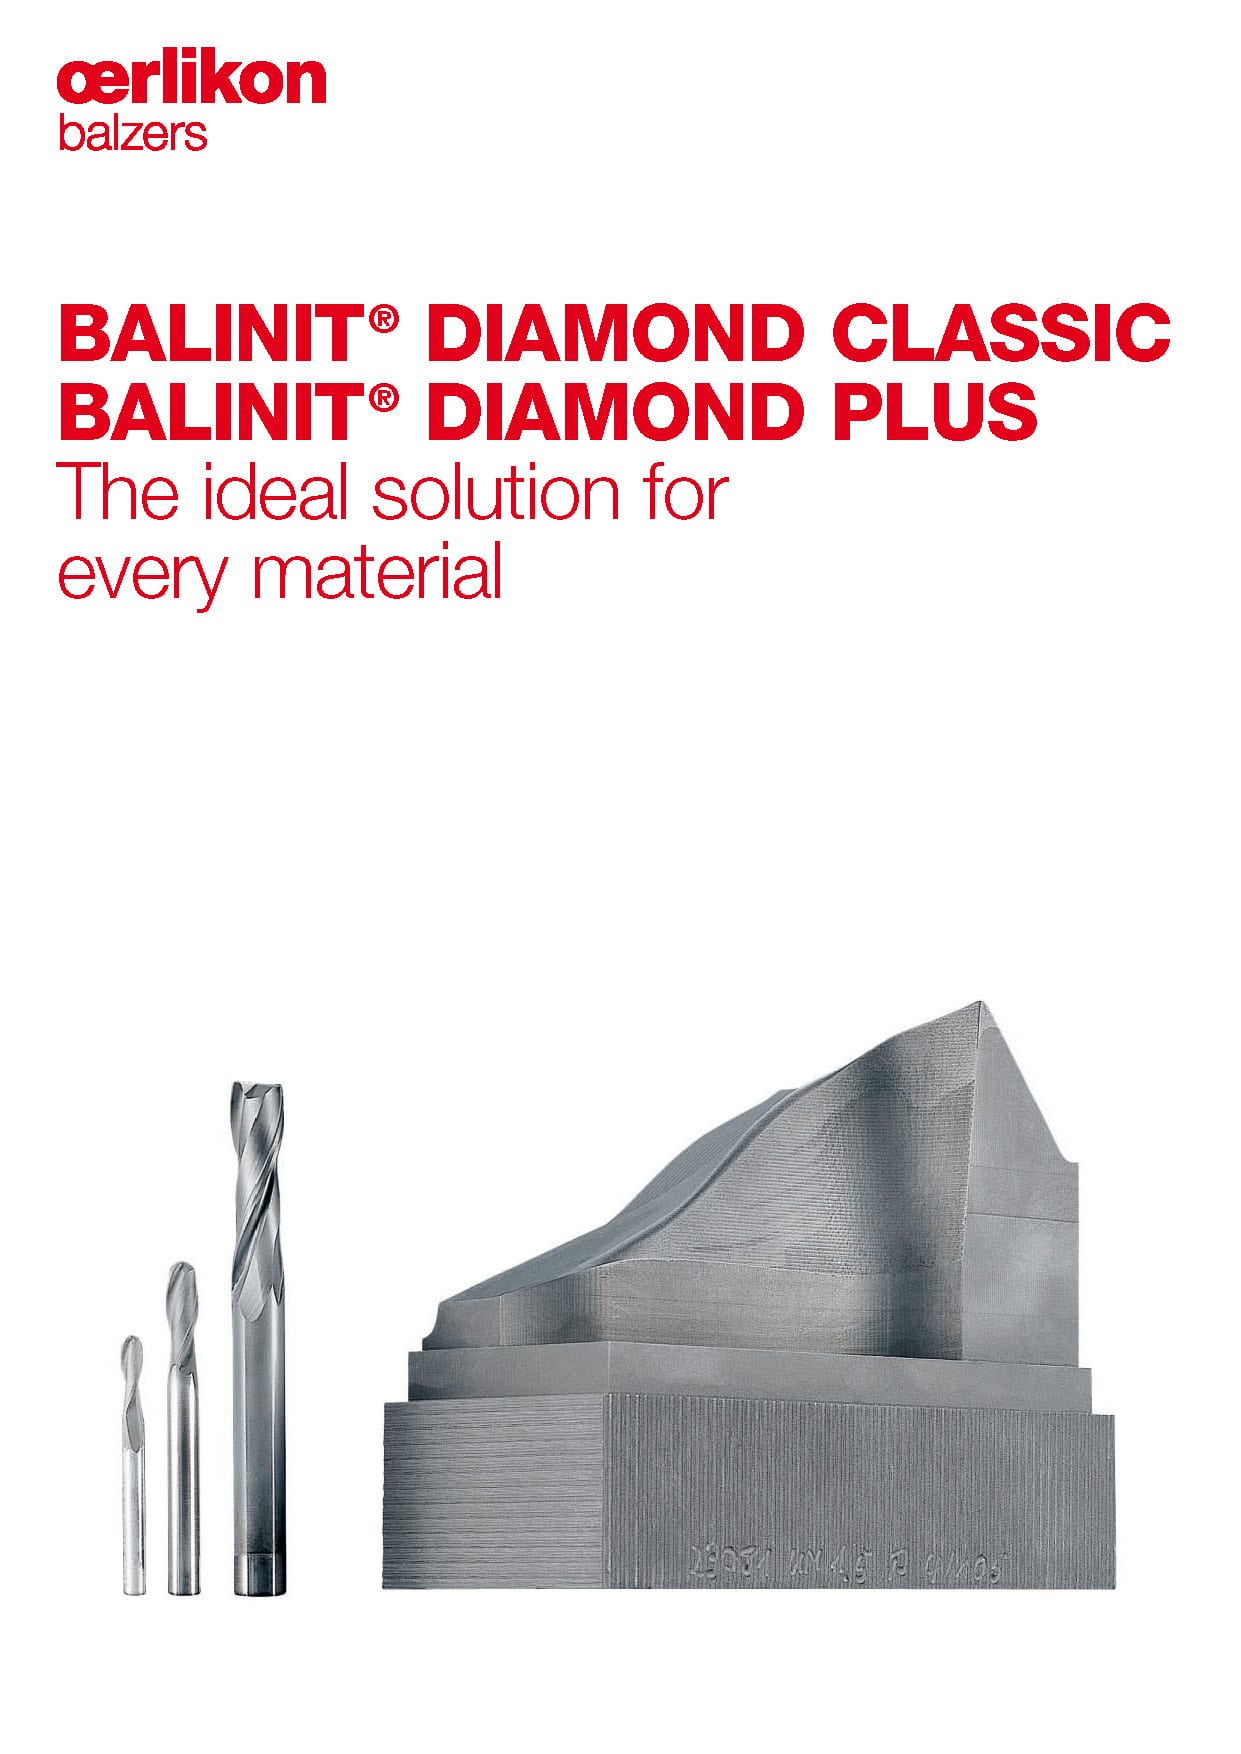 BALINIT® DIAMOND CLASSIC & PLUS - The ideal solution for every material